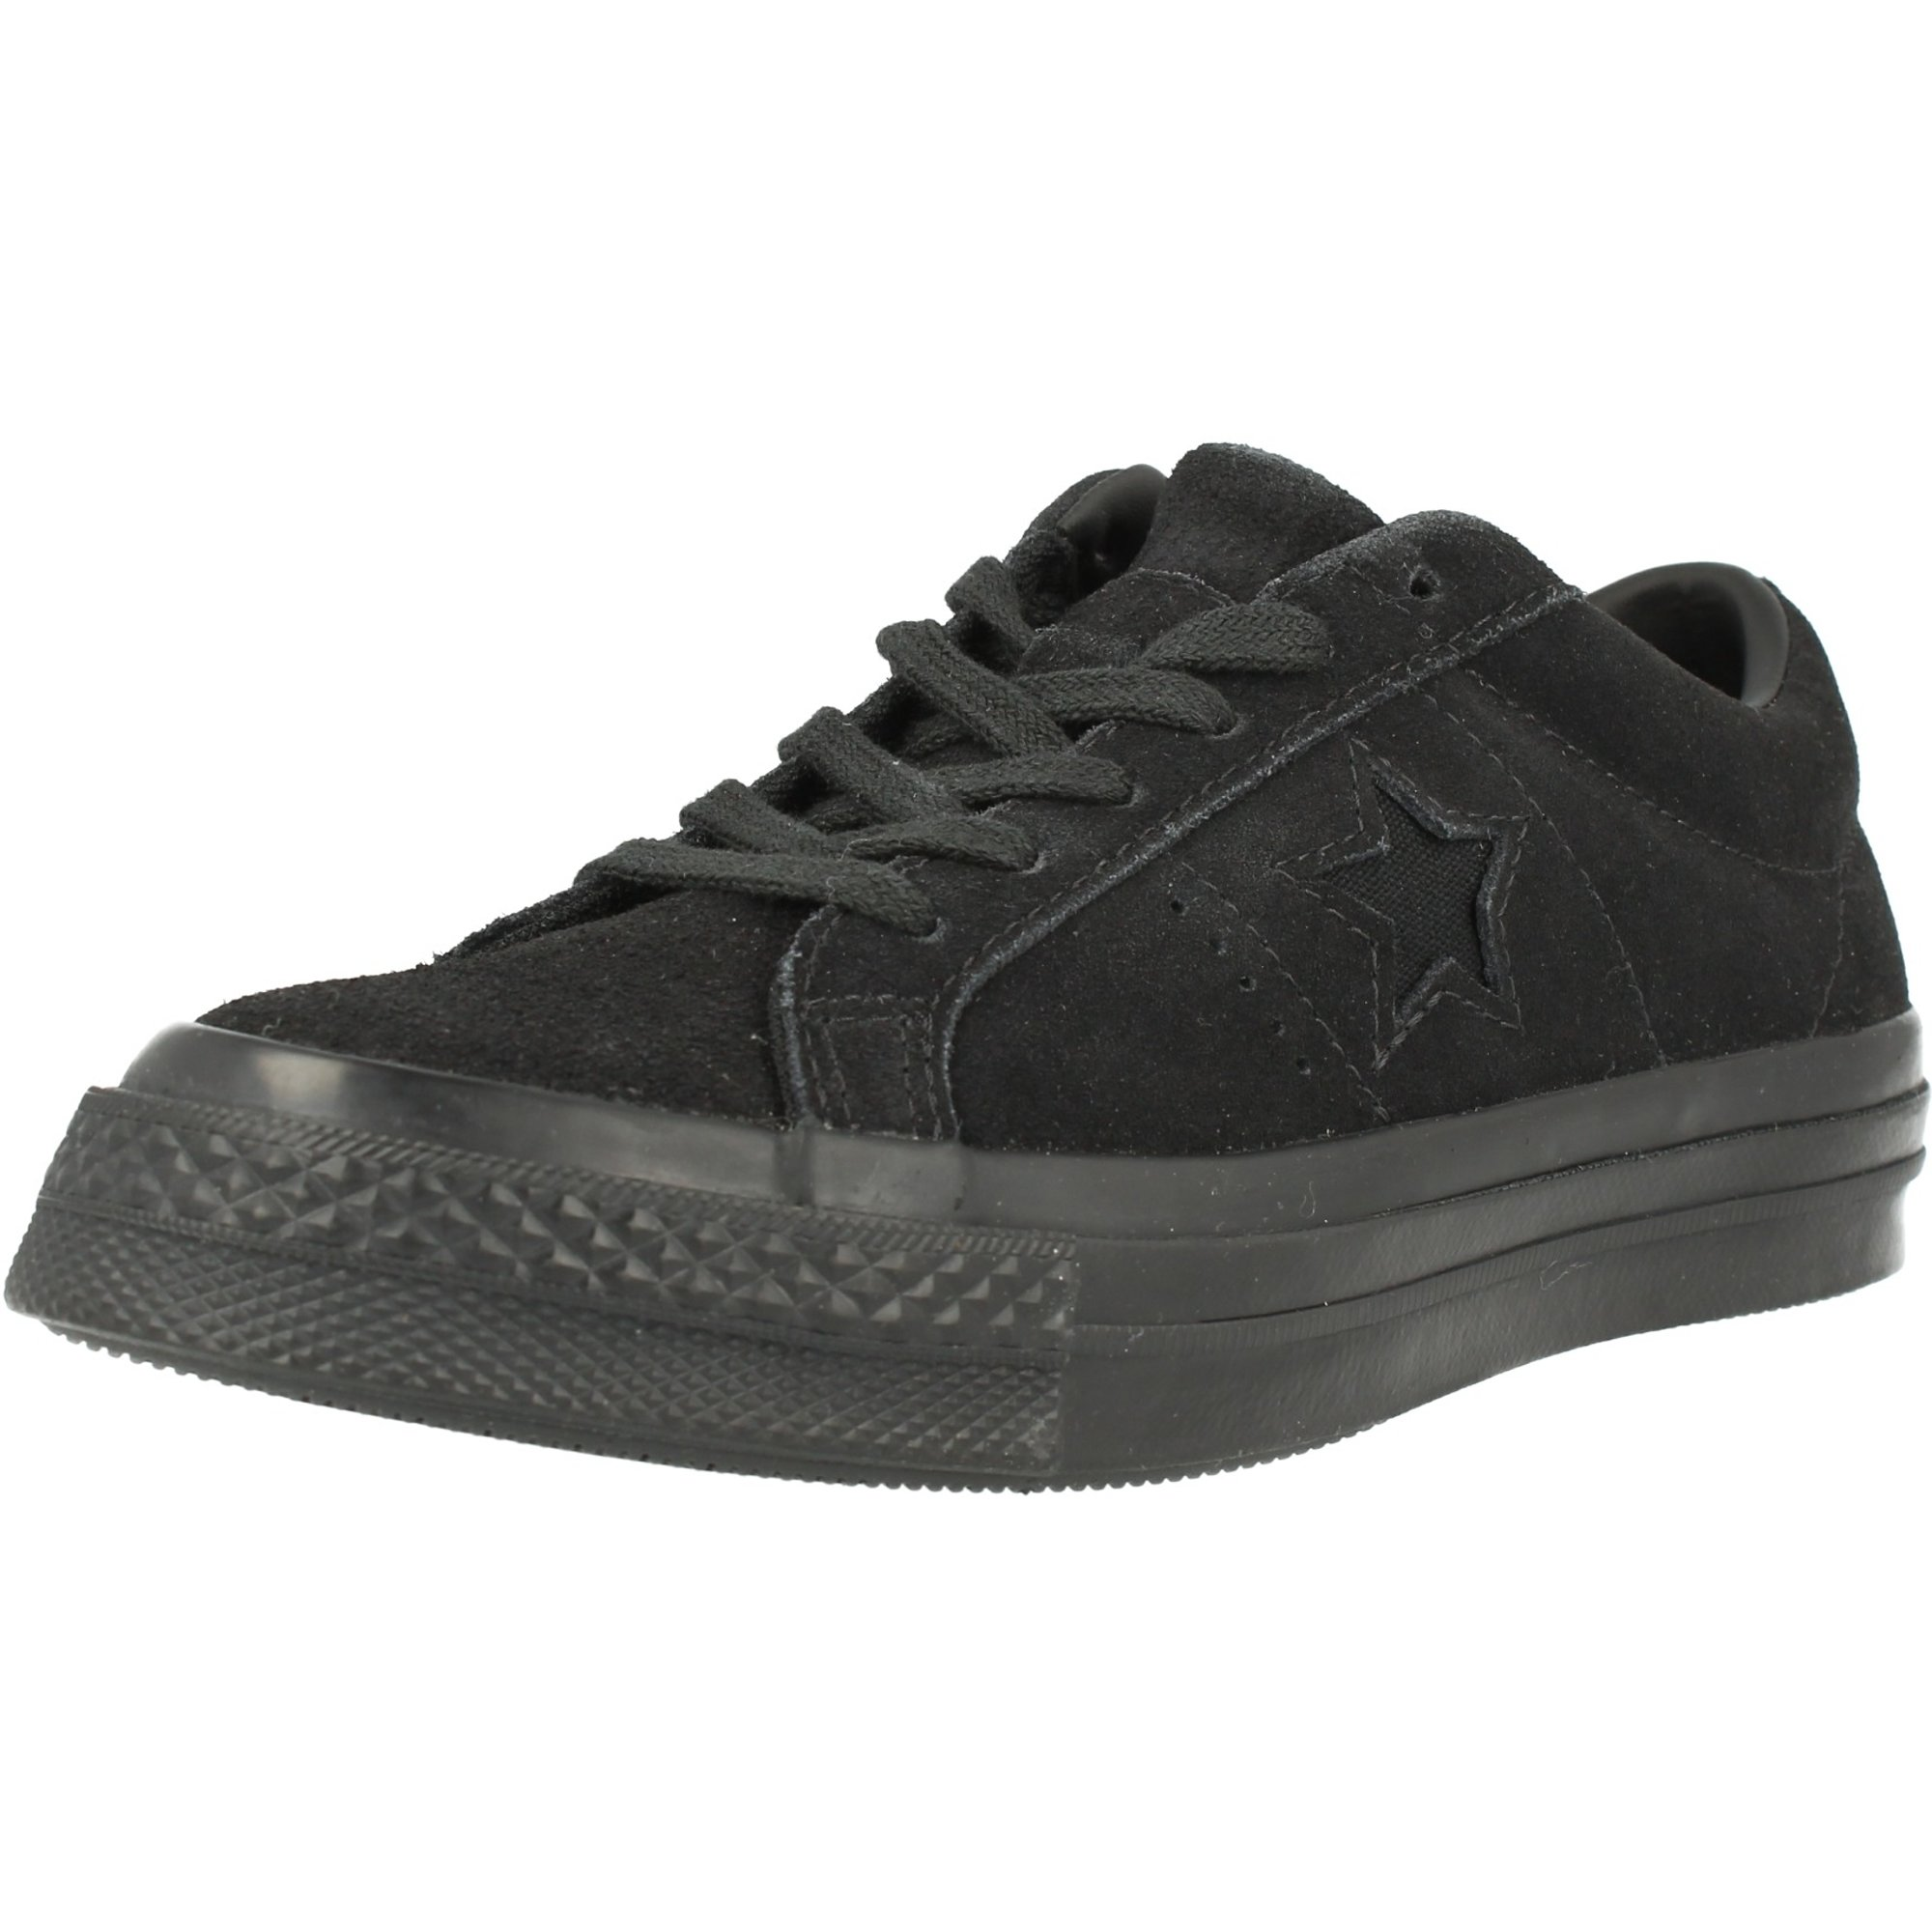 Star Ox Black Suede - Trainers Shoes